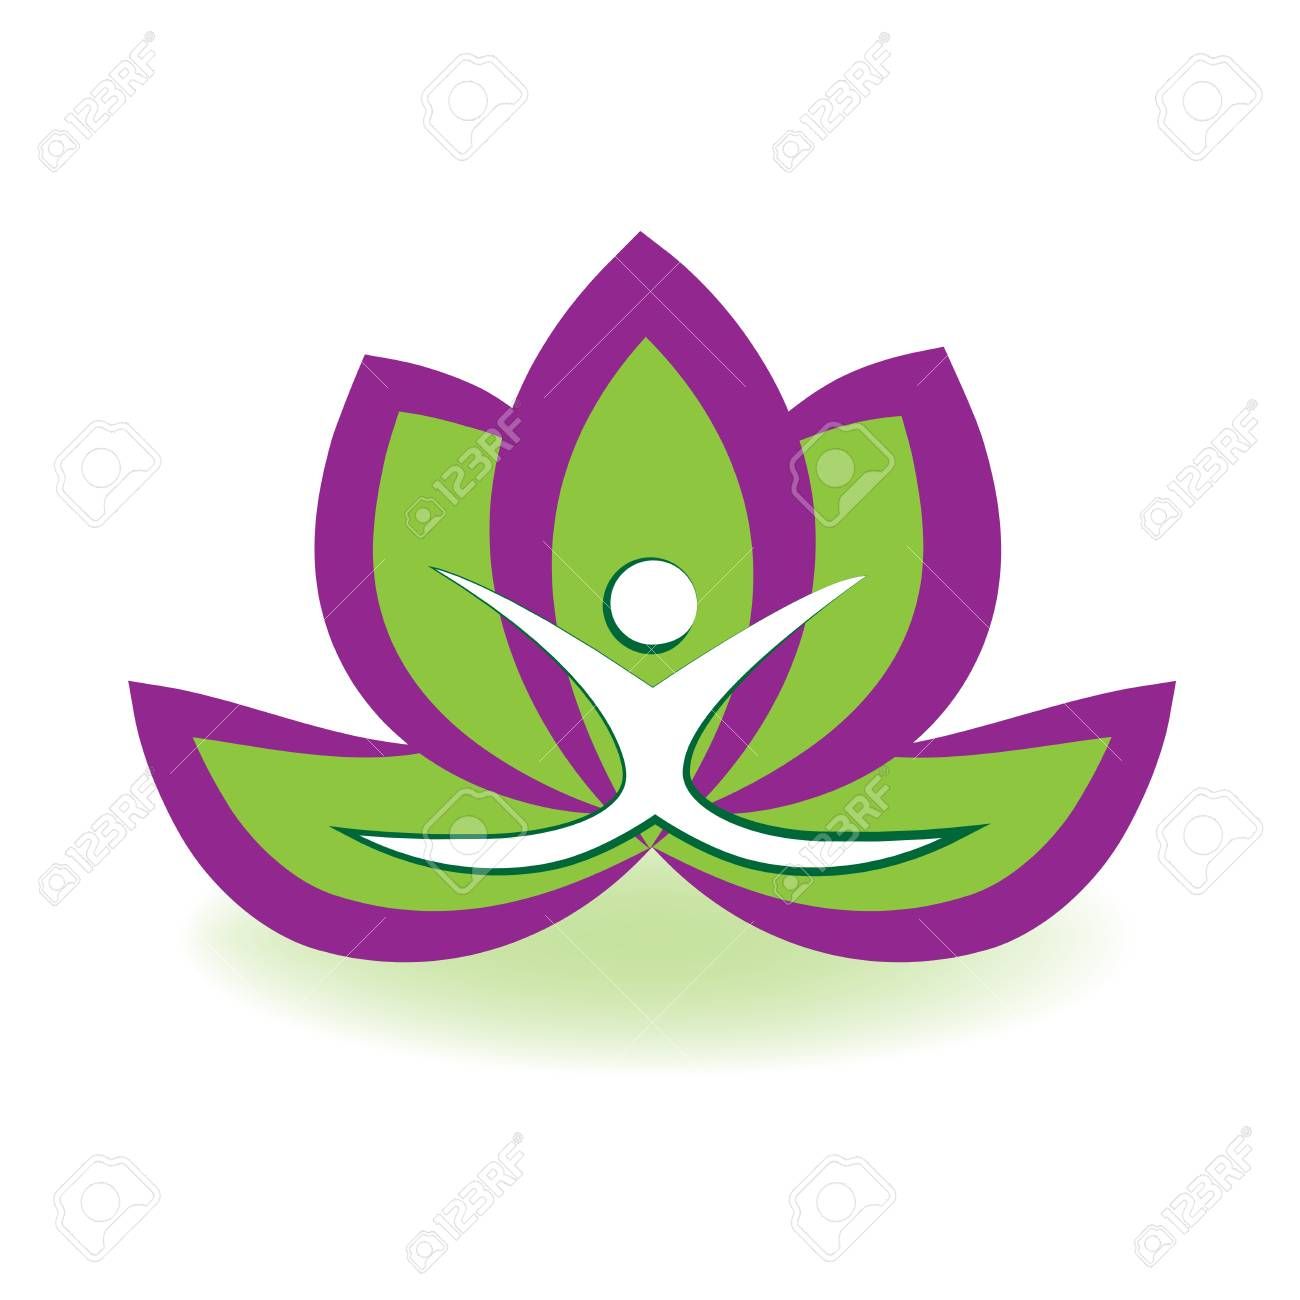 yoga man and lotus flower logo vector image royalty free cliparts rh 123rf com lotus flower logo design